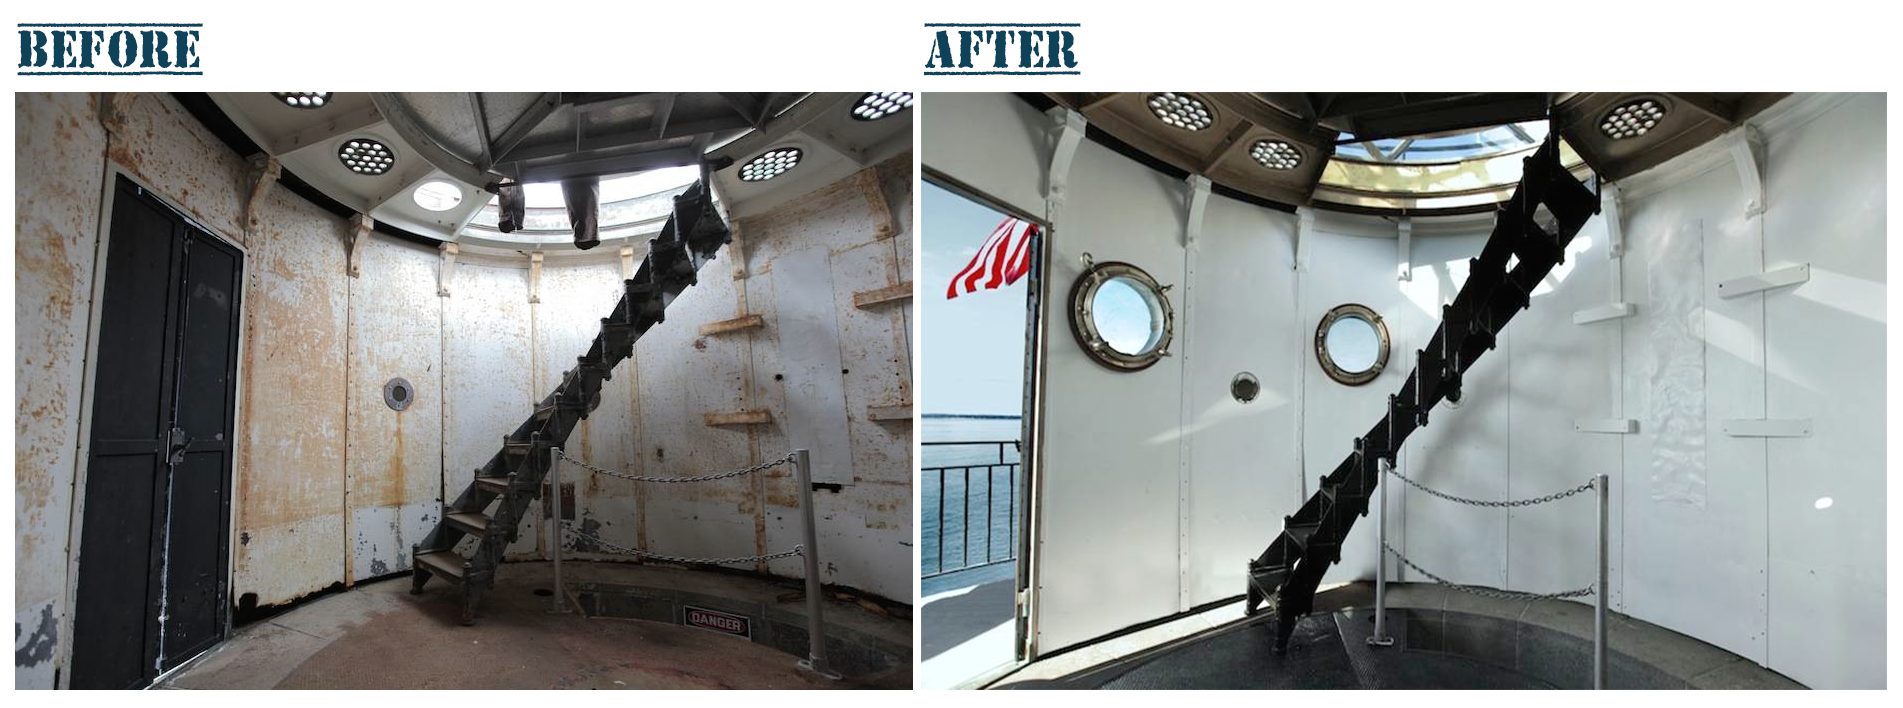 The Watch Room at Graves Light, before initial cleaning and painting (left) and after sandblasting and first coats of primer and paint (right).